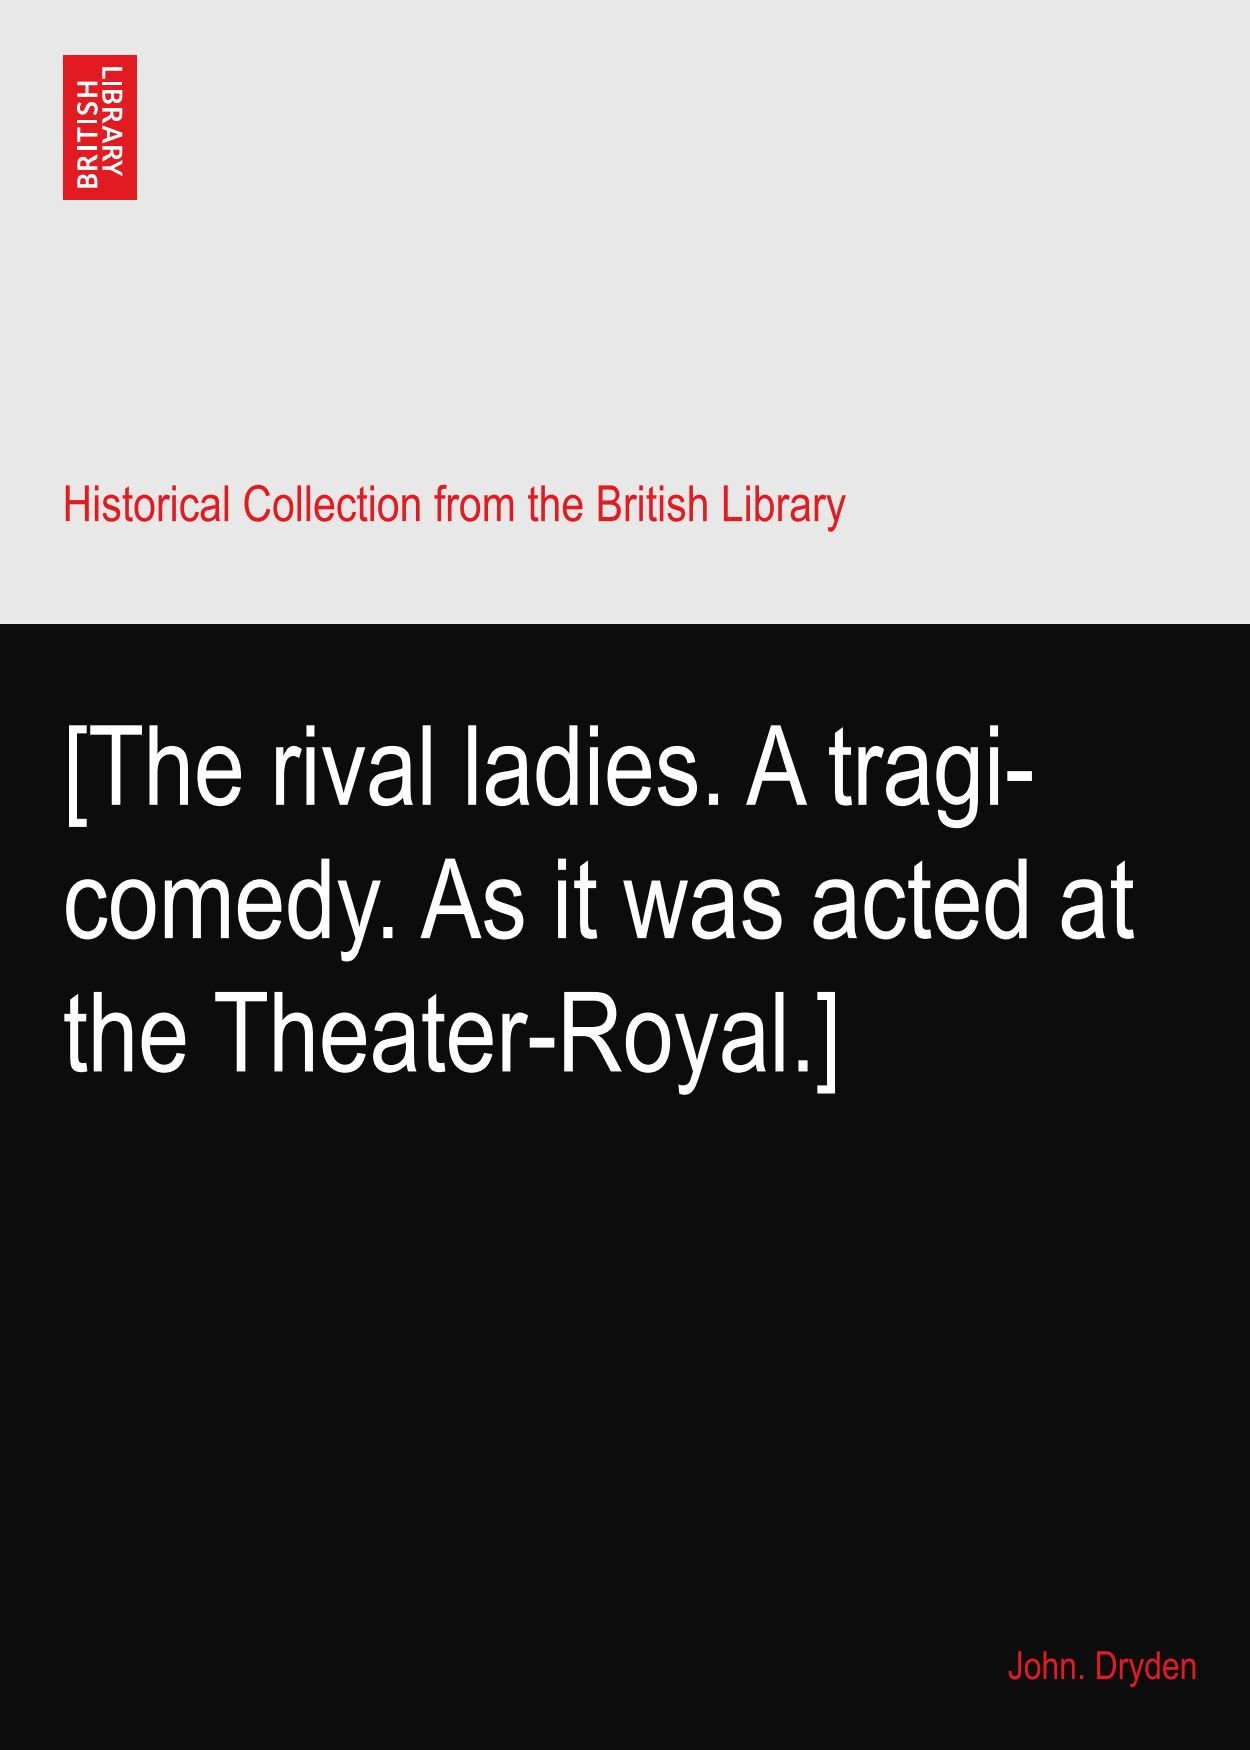 Download [The rival ladies. A tragi-comedy. As it was acted at the Theater-Royal.] ebook